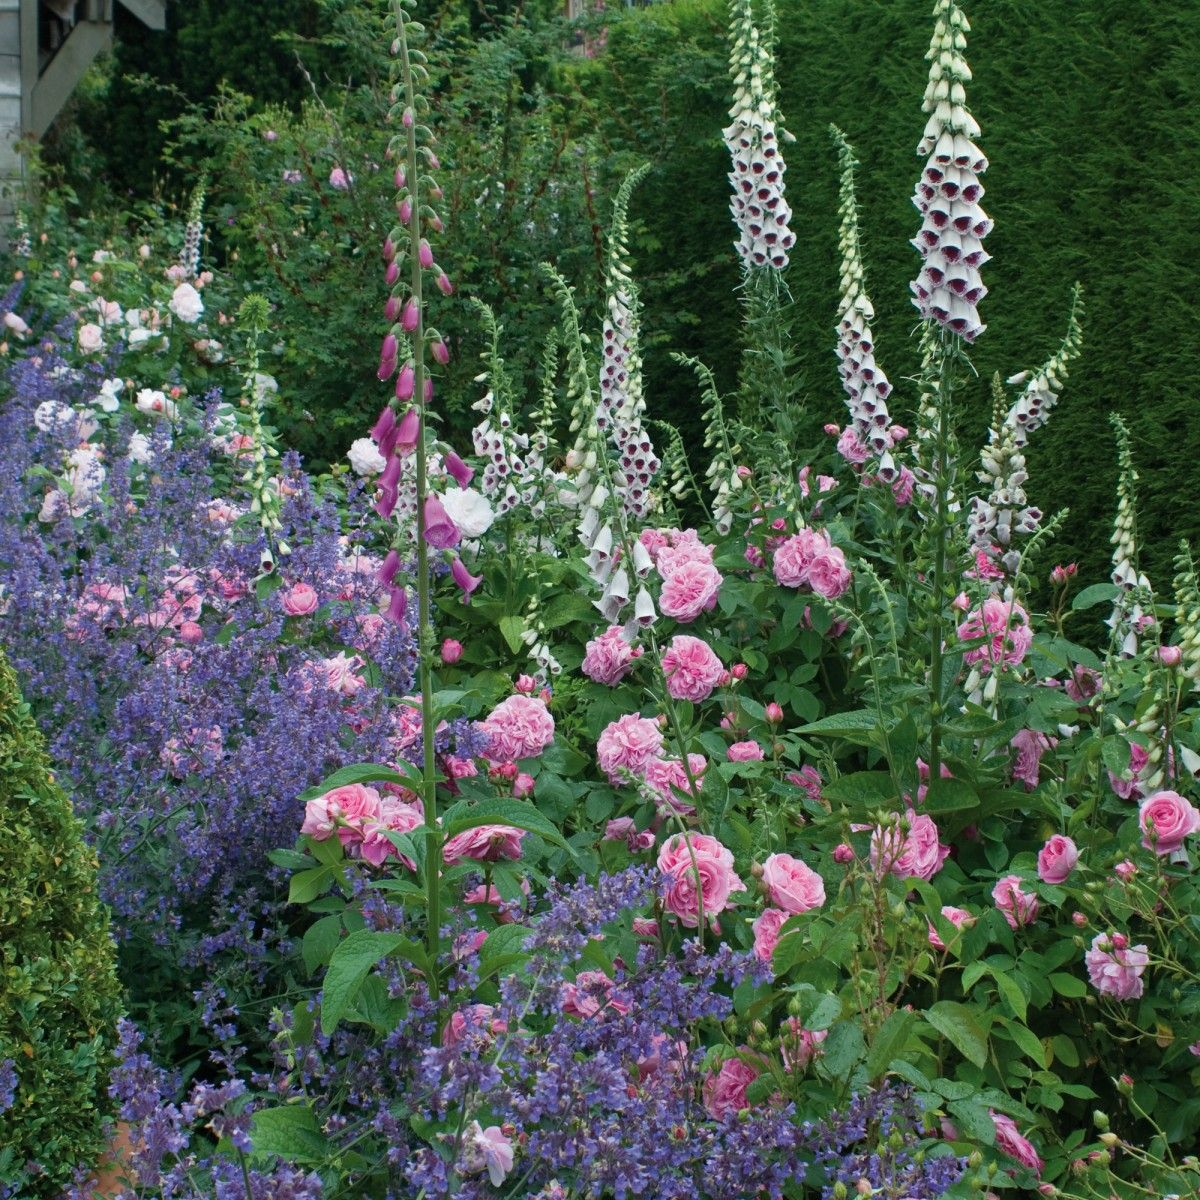 gertrude jekyll rose in the mixed border - like this with purple